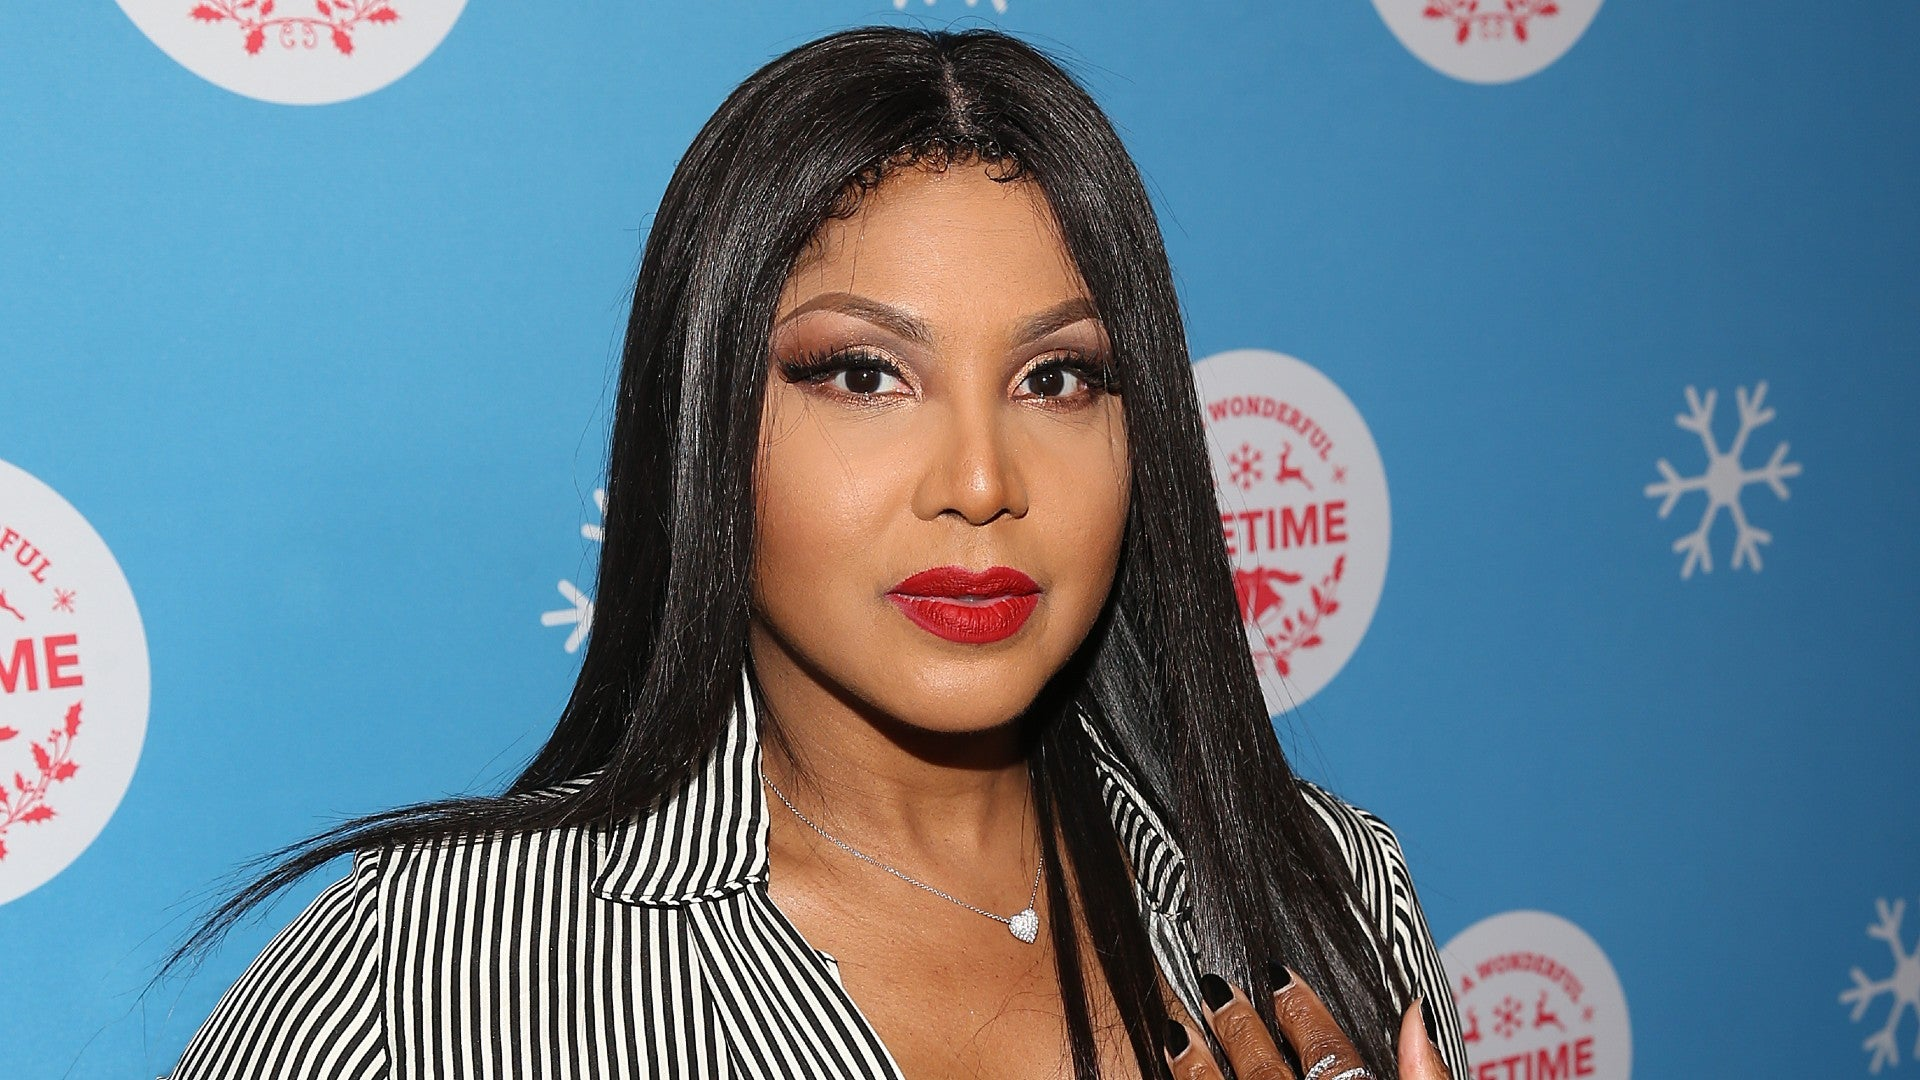 Toni Braxton Looks Gorgeous For Christmas In This Video